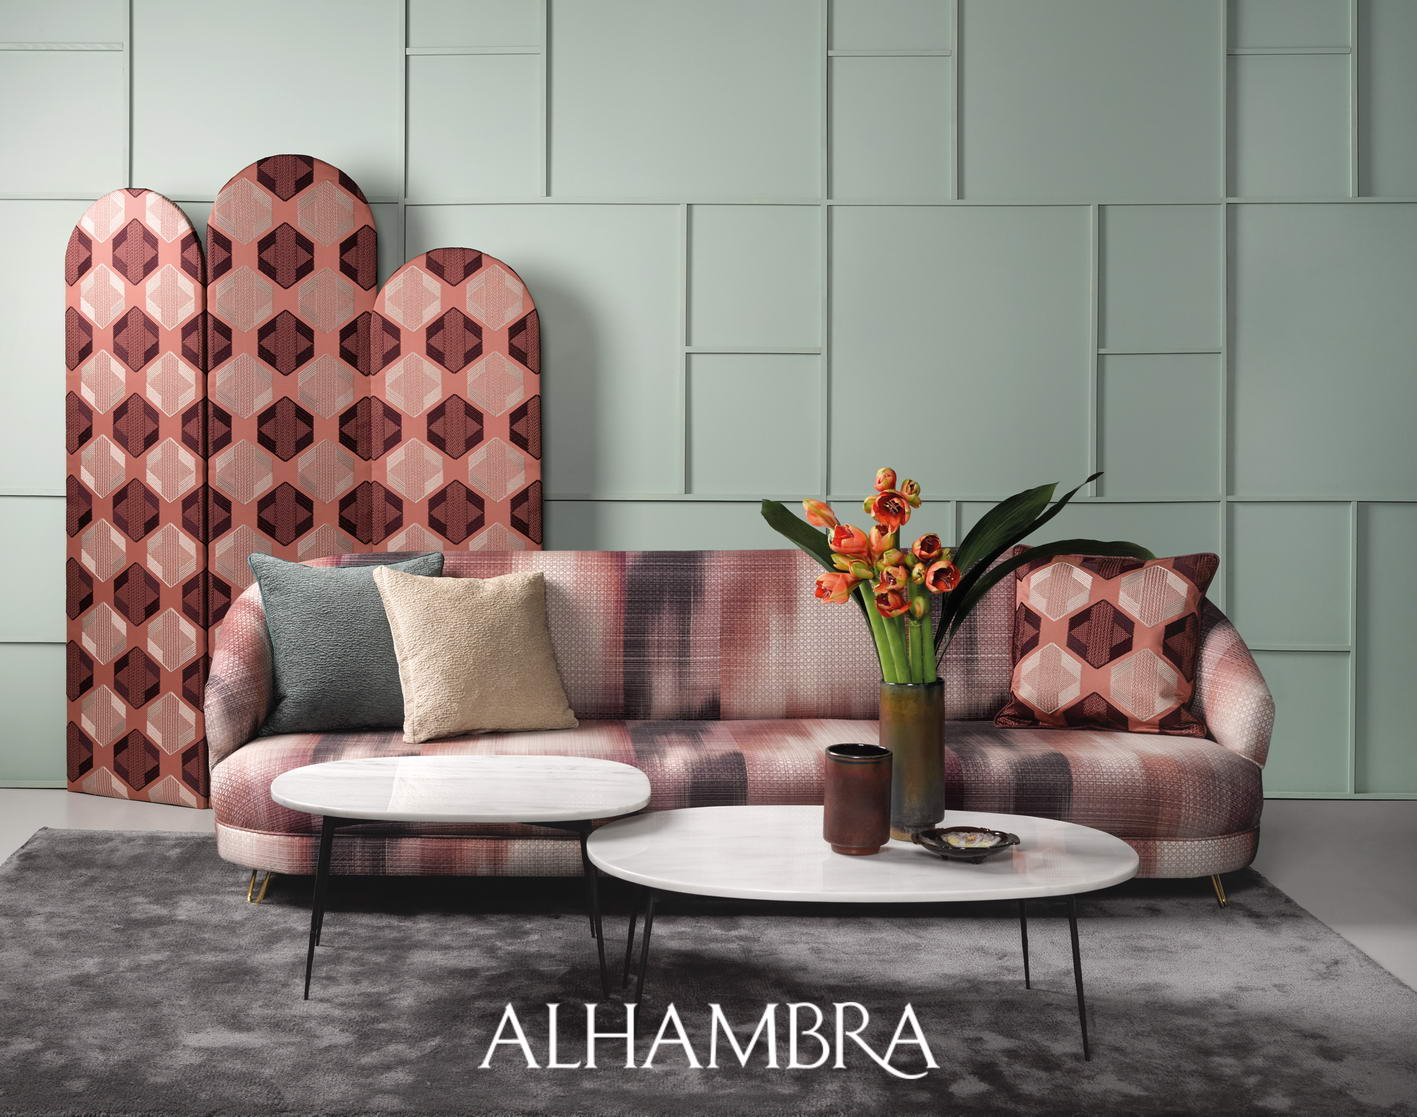 ALHAMBRA-GATSBY-F7-BLOG-LIVING-CORAL